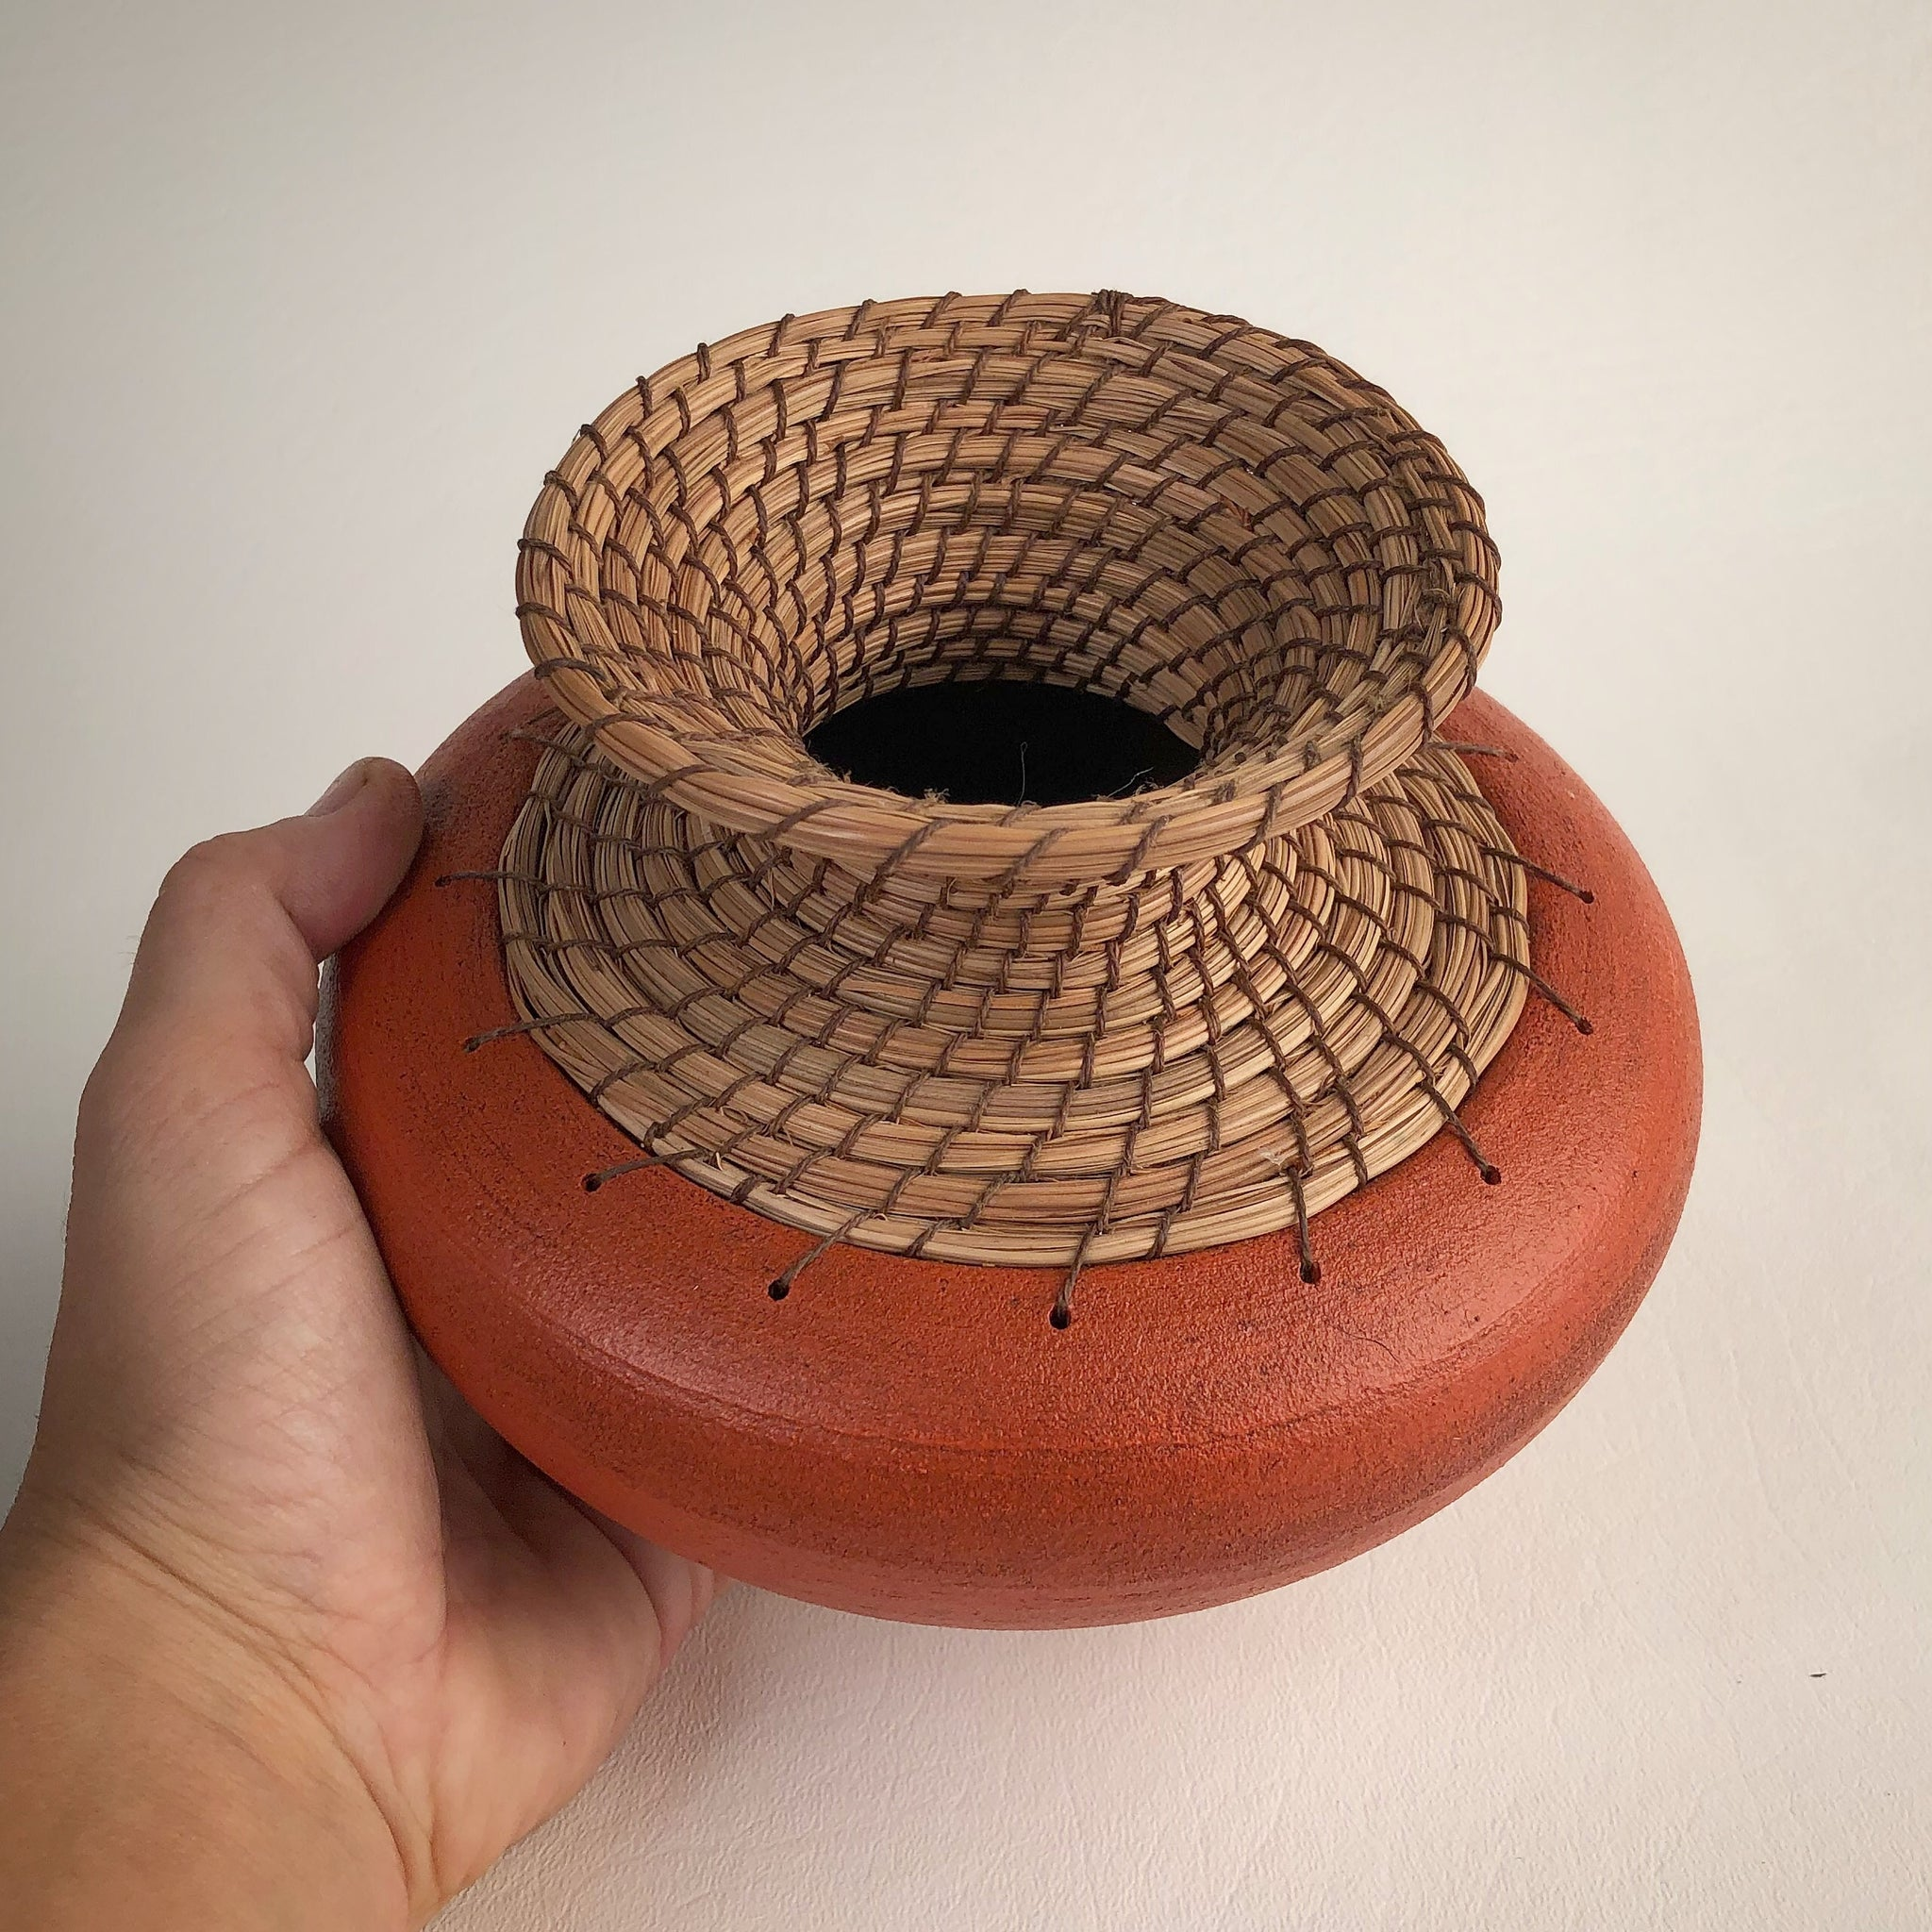 Burnt orange vase